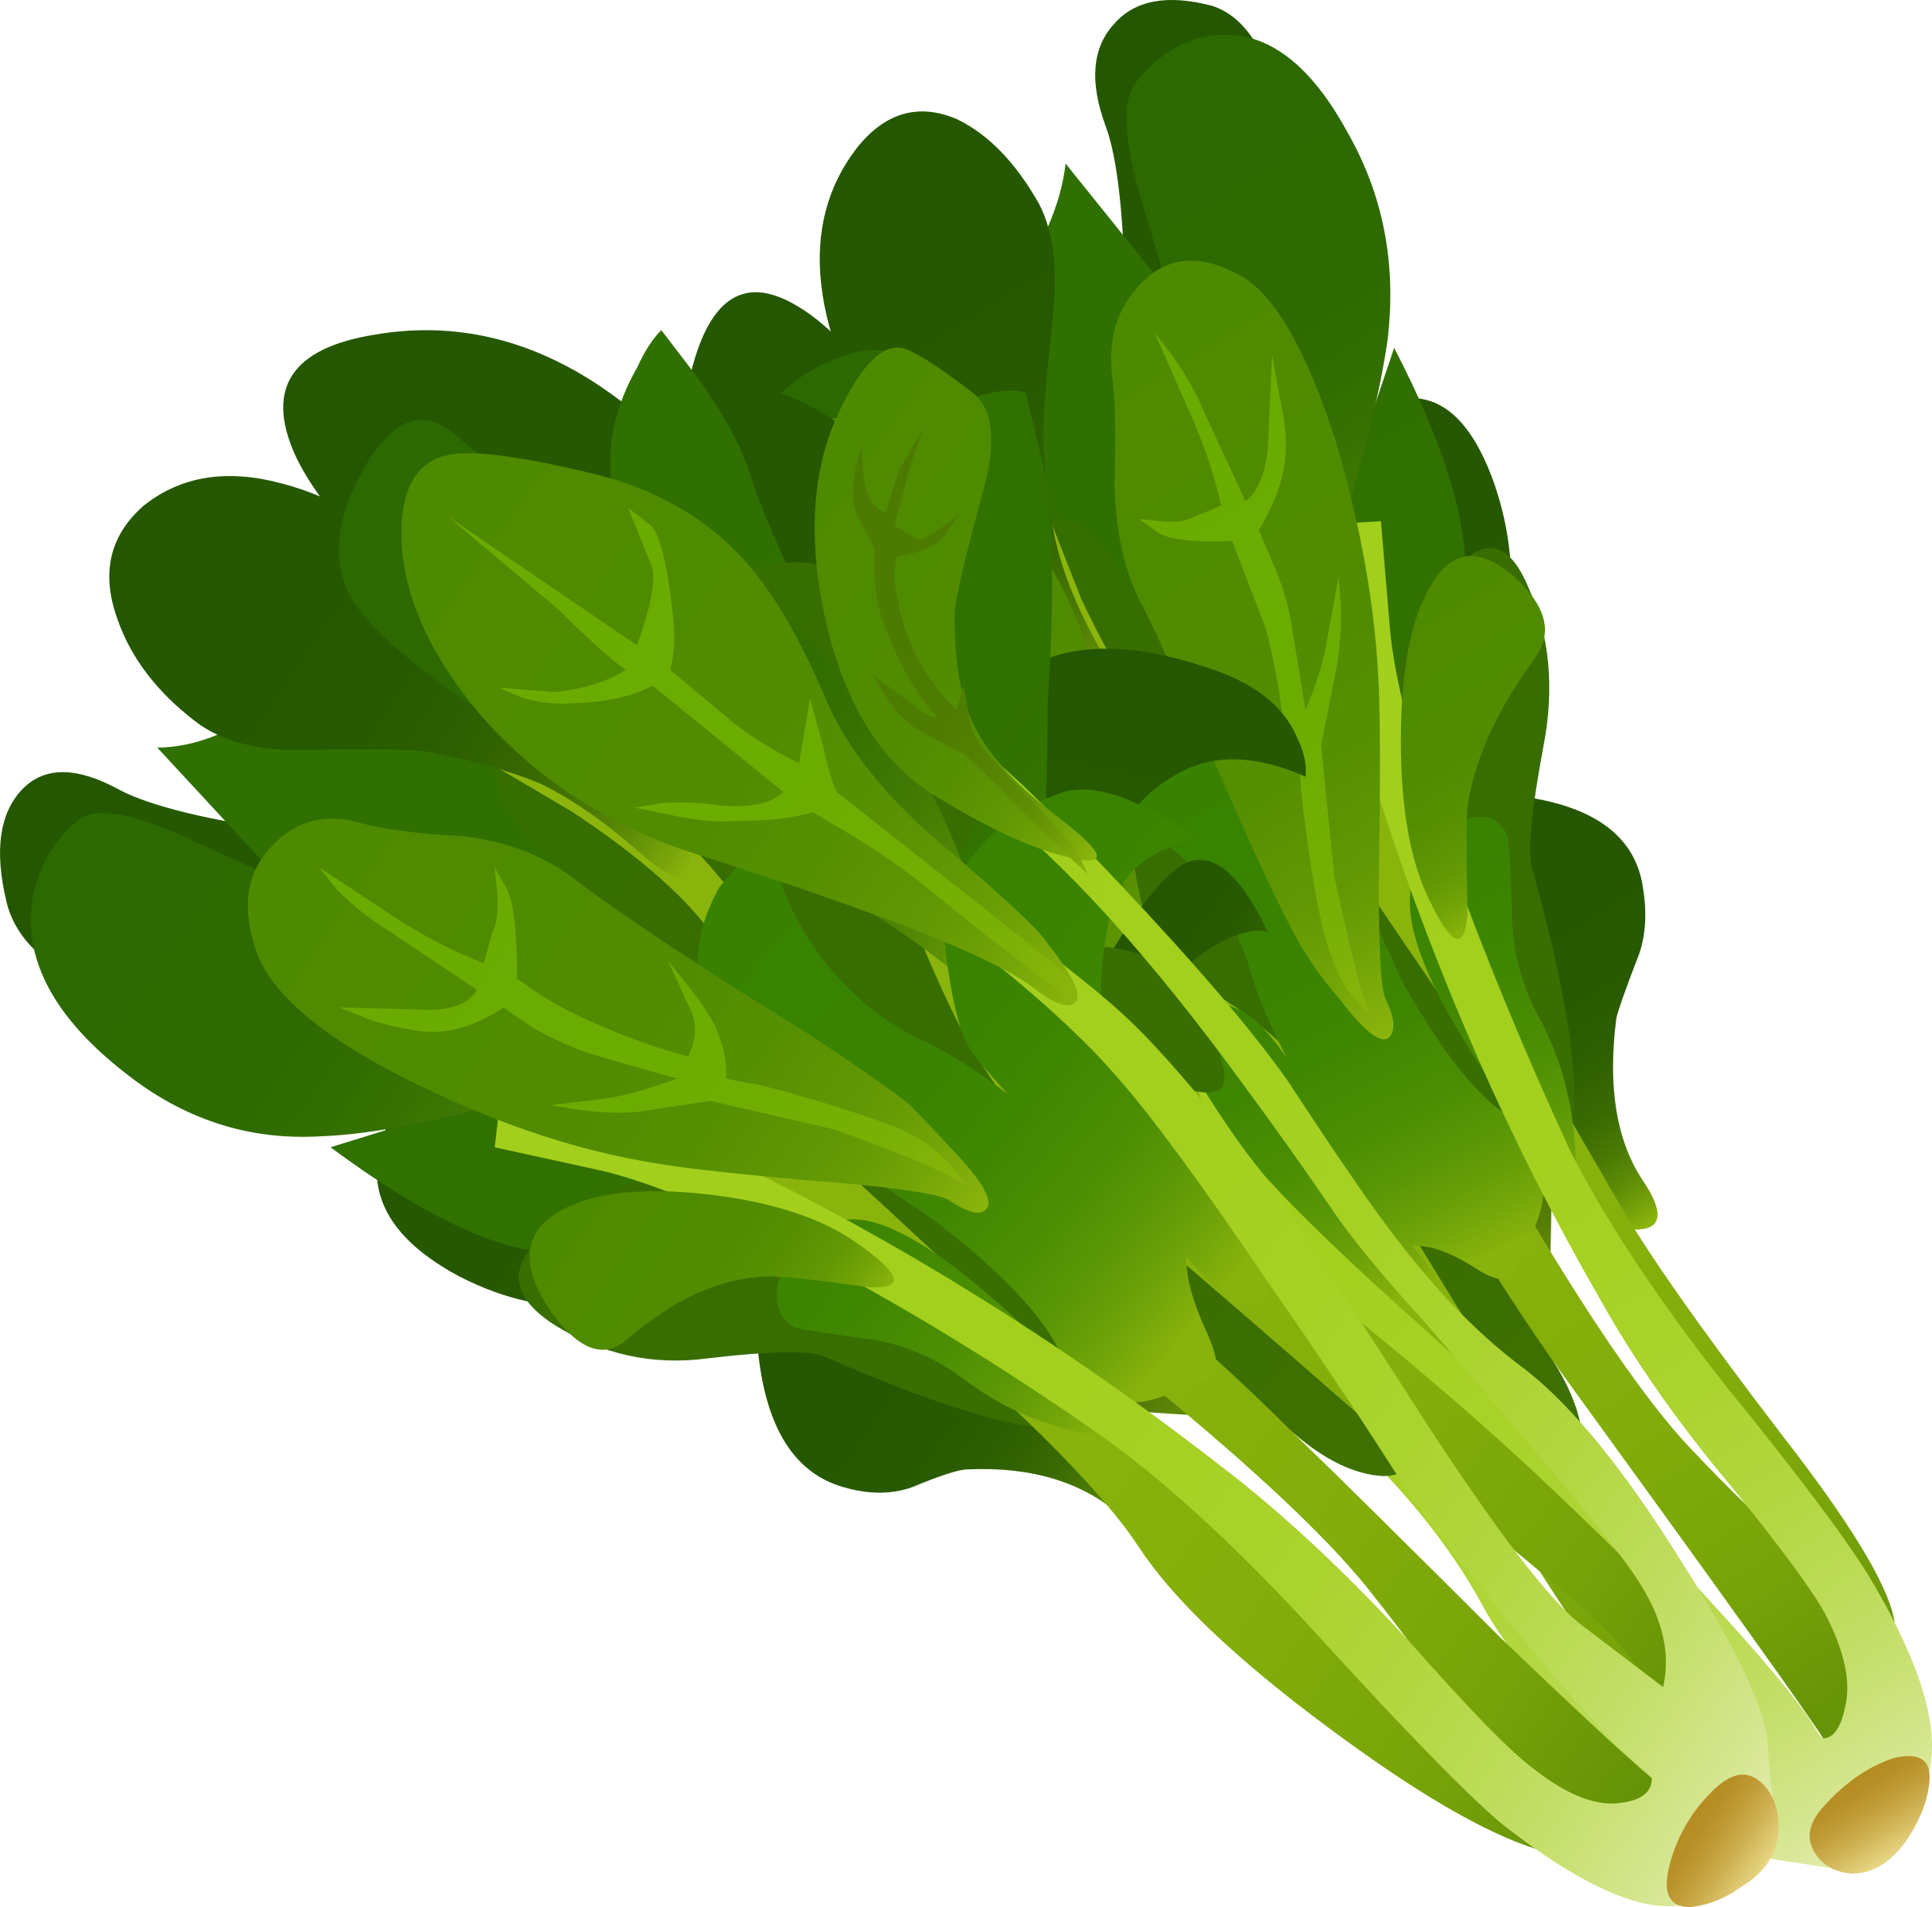 Lettuce cartoon png. Clipart food spinach big